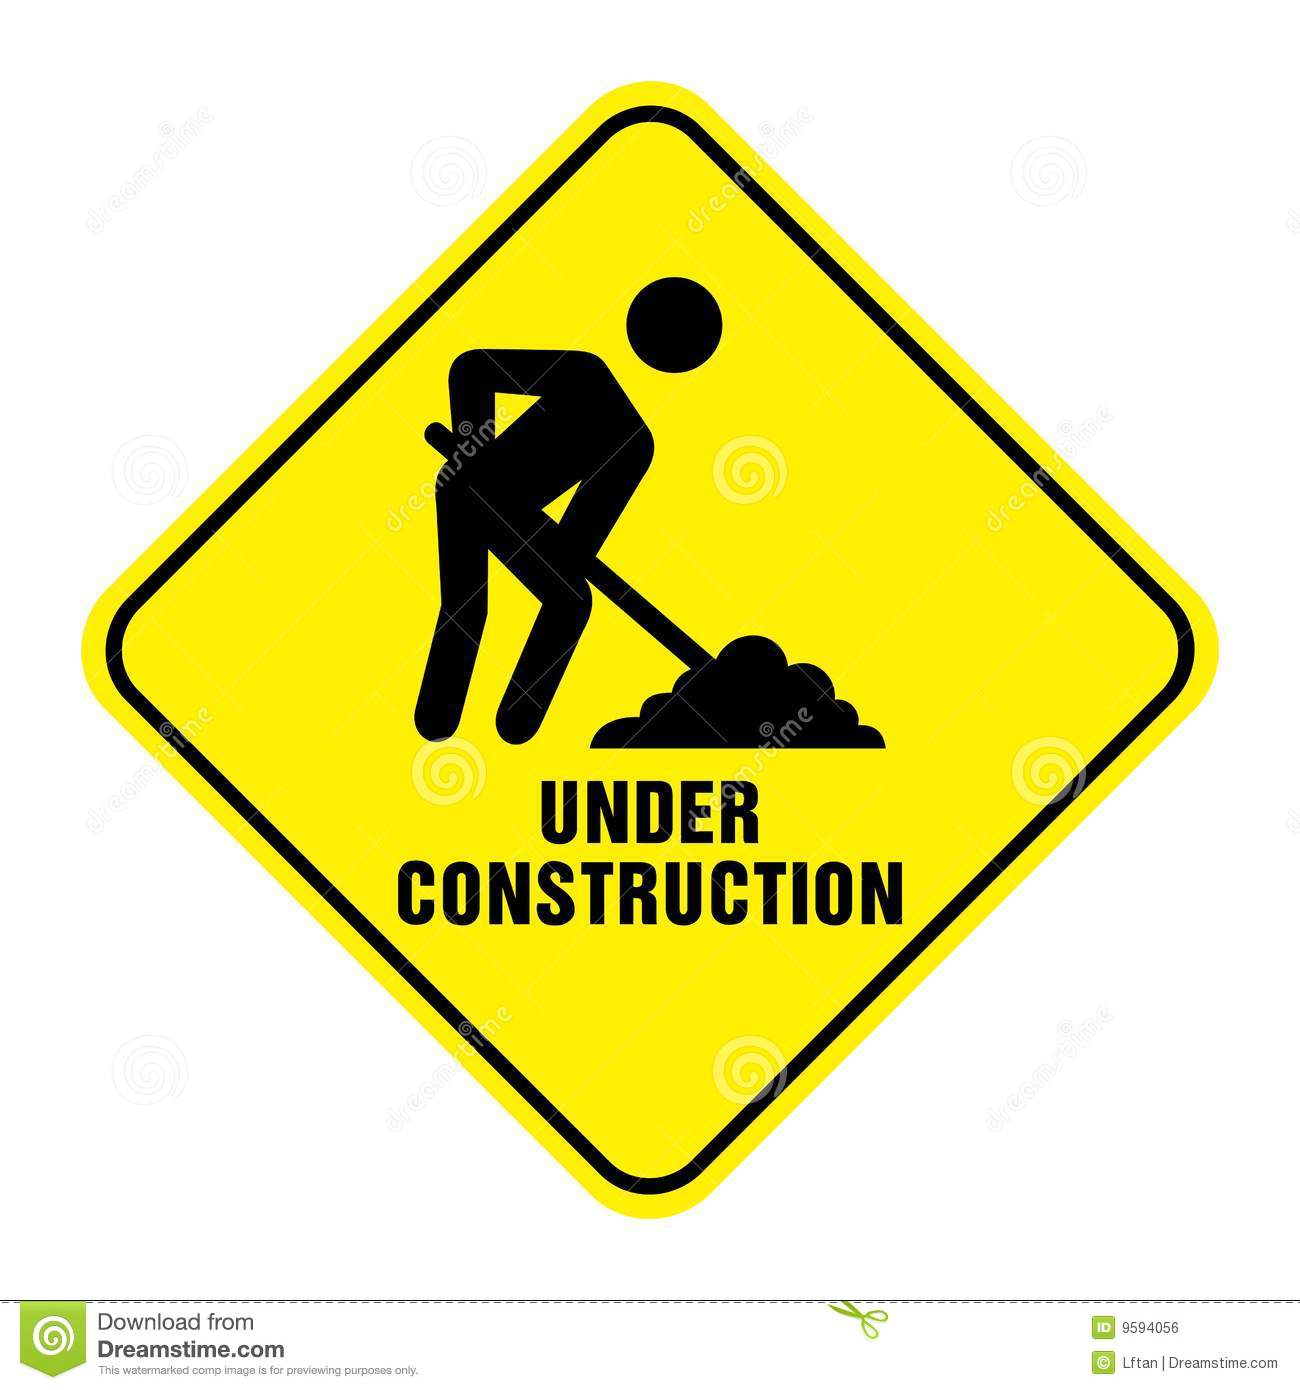 Under construction sign clip art.